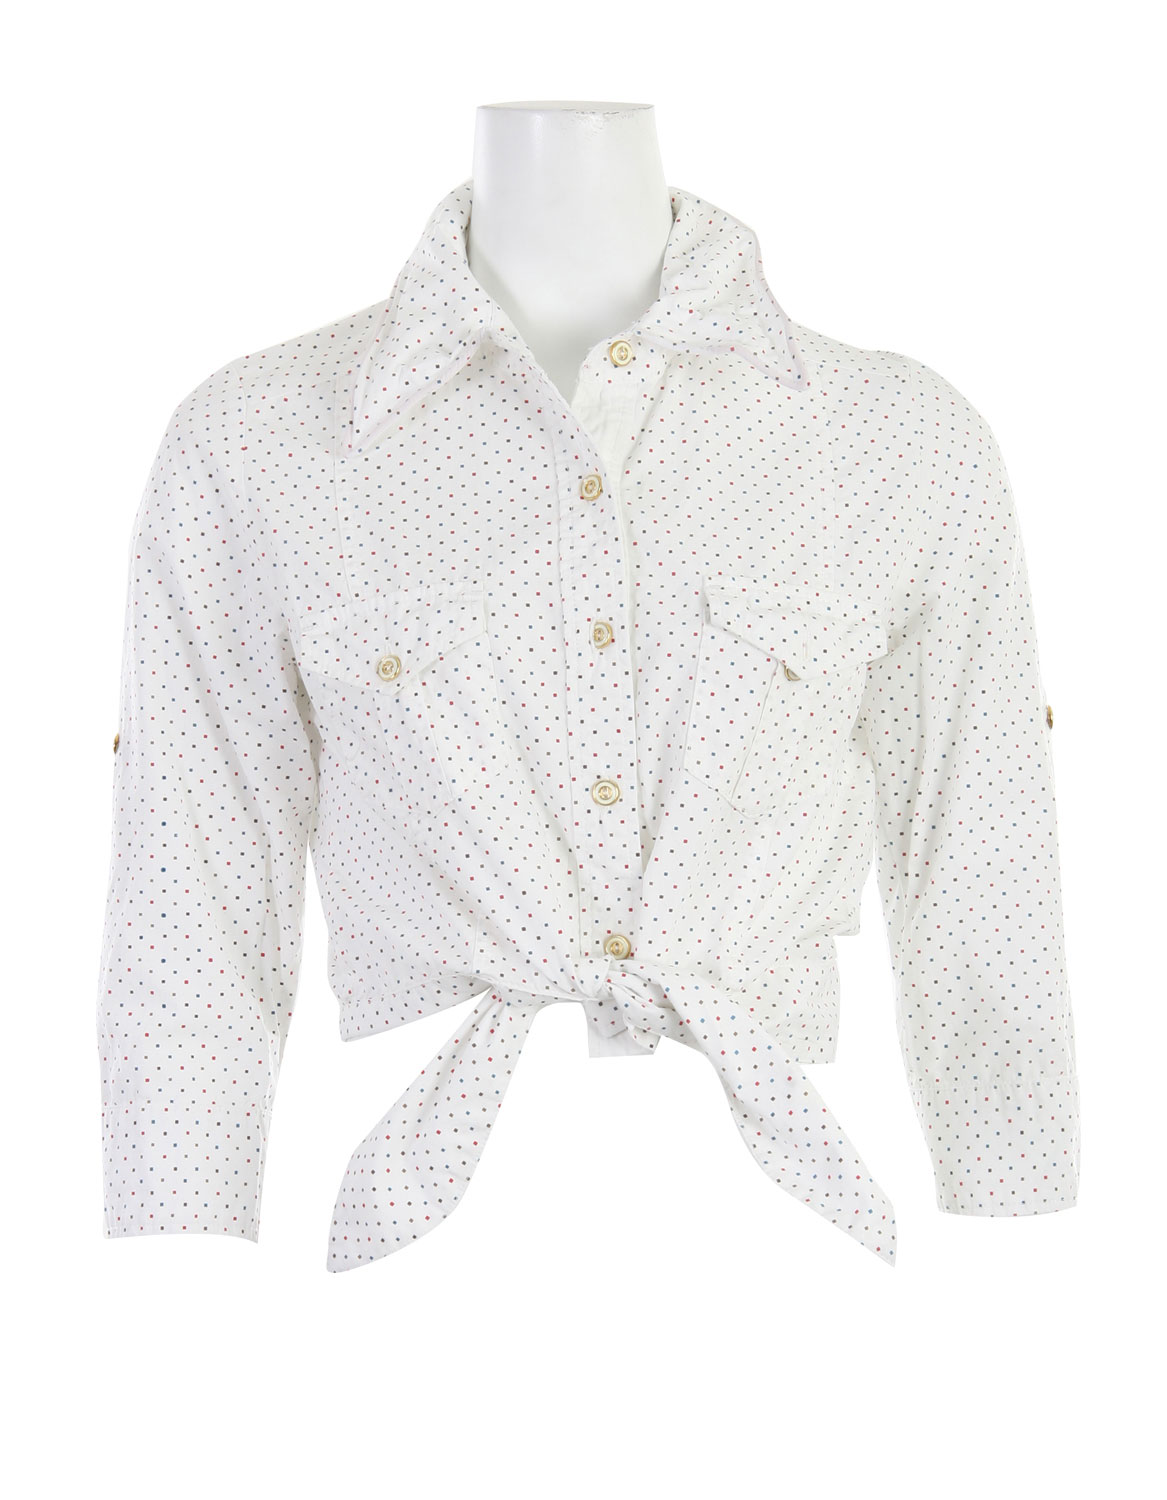 Snowboard Get ultra glam with this classic button down textured shirt. The Burton Pop Your Collar Shirt is a classic design, featuring a simple button down look, but spice is surely added with its polka dot design detail. Simple yet chic, you'll look good every time. Made with 100% cotton, this shirt is super soft to the touch, and ideal for all day wear. So, get one for yourself and rock it all year long. - $20.06